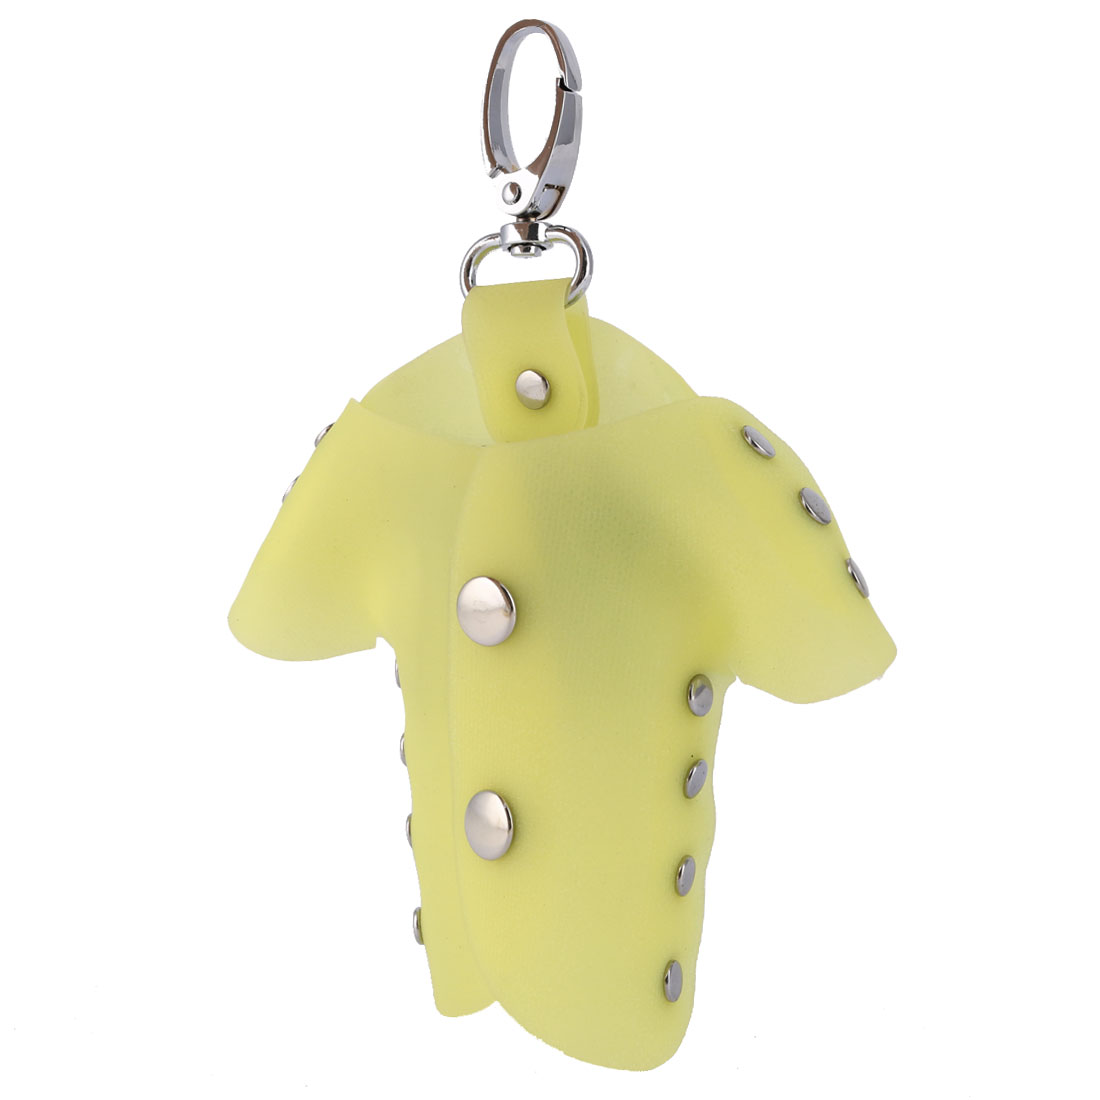 Plastic Cover Clothes Shape Portable Keychain Keys Holder Bag Silver Tone Yellow